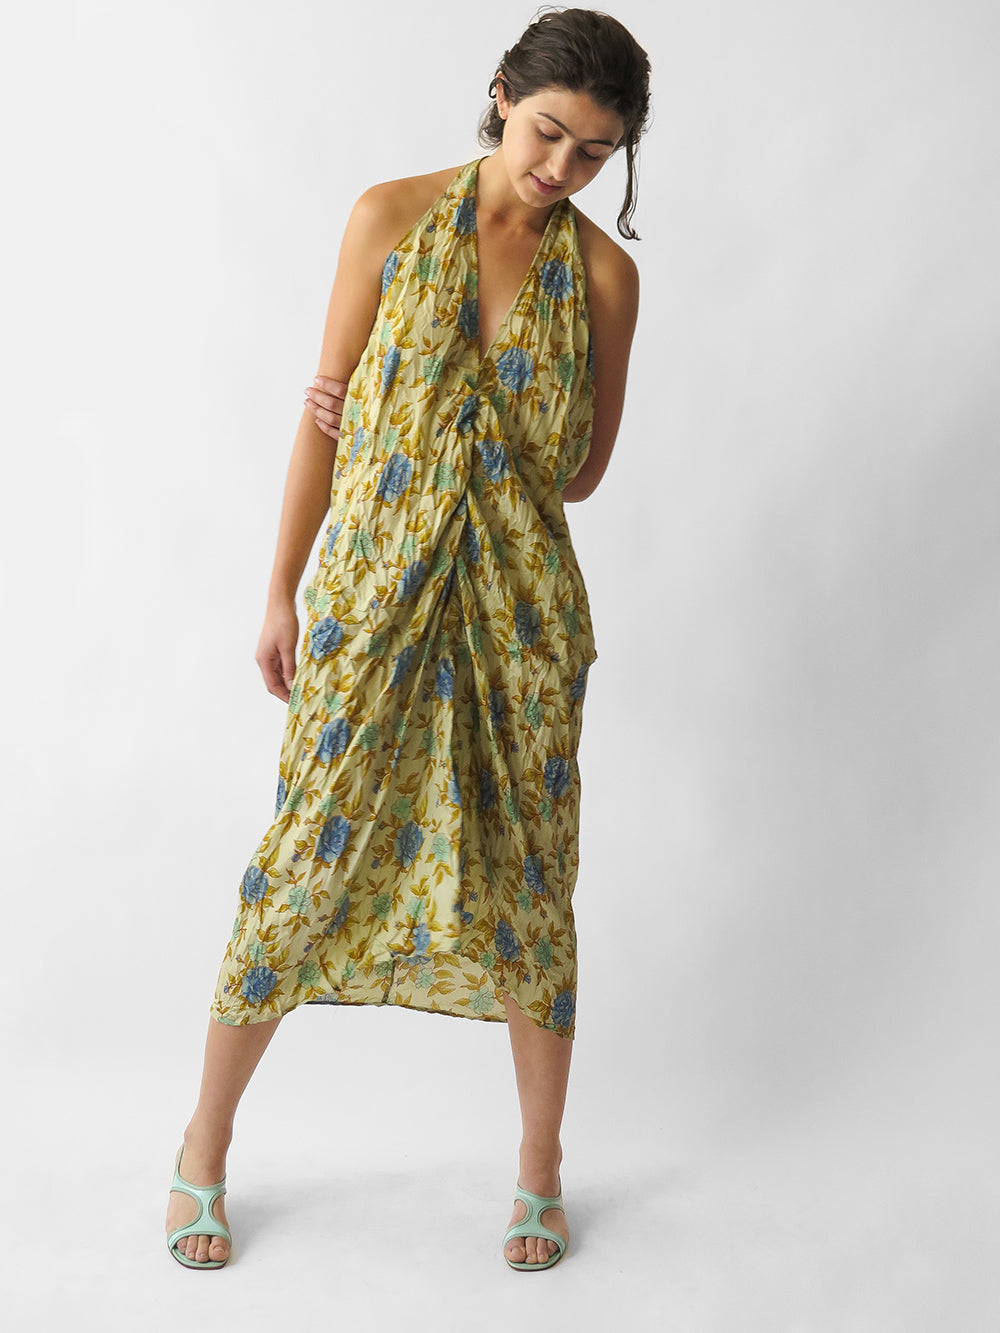 hazel brown sleeveless dress in all floral